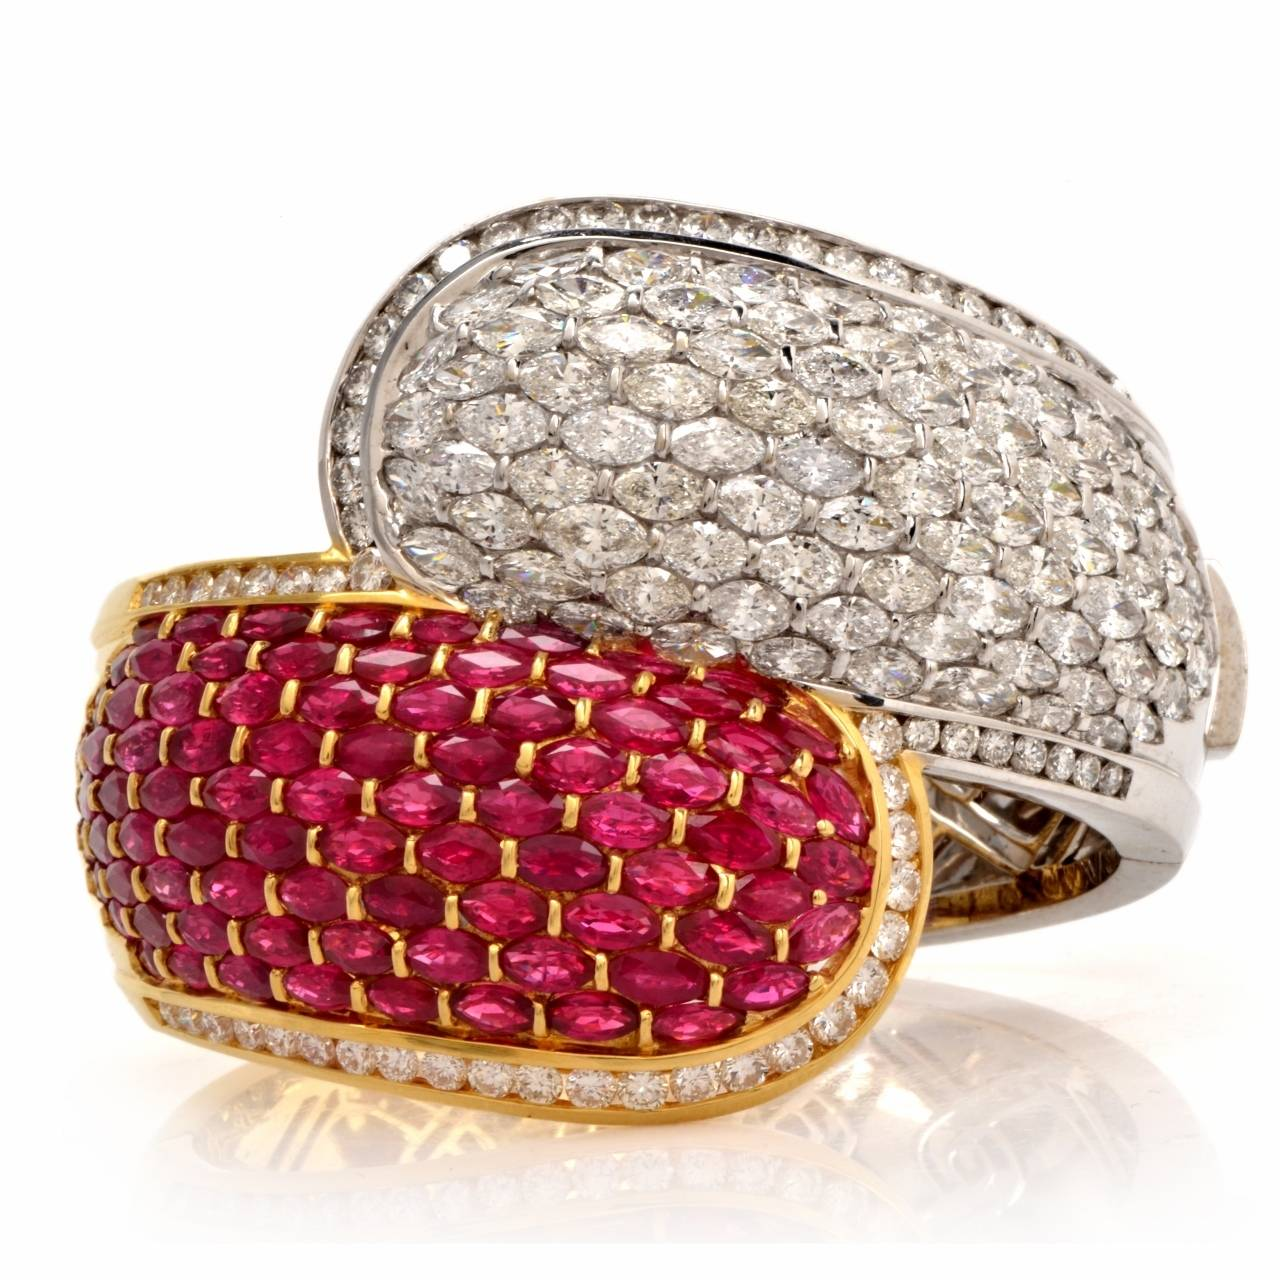 Cluster Ruby Diamond Two Color Gold Bangle Cuff Bracelet In Excellent Condition For Sale In Miami, FL